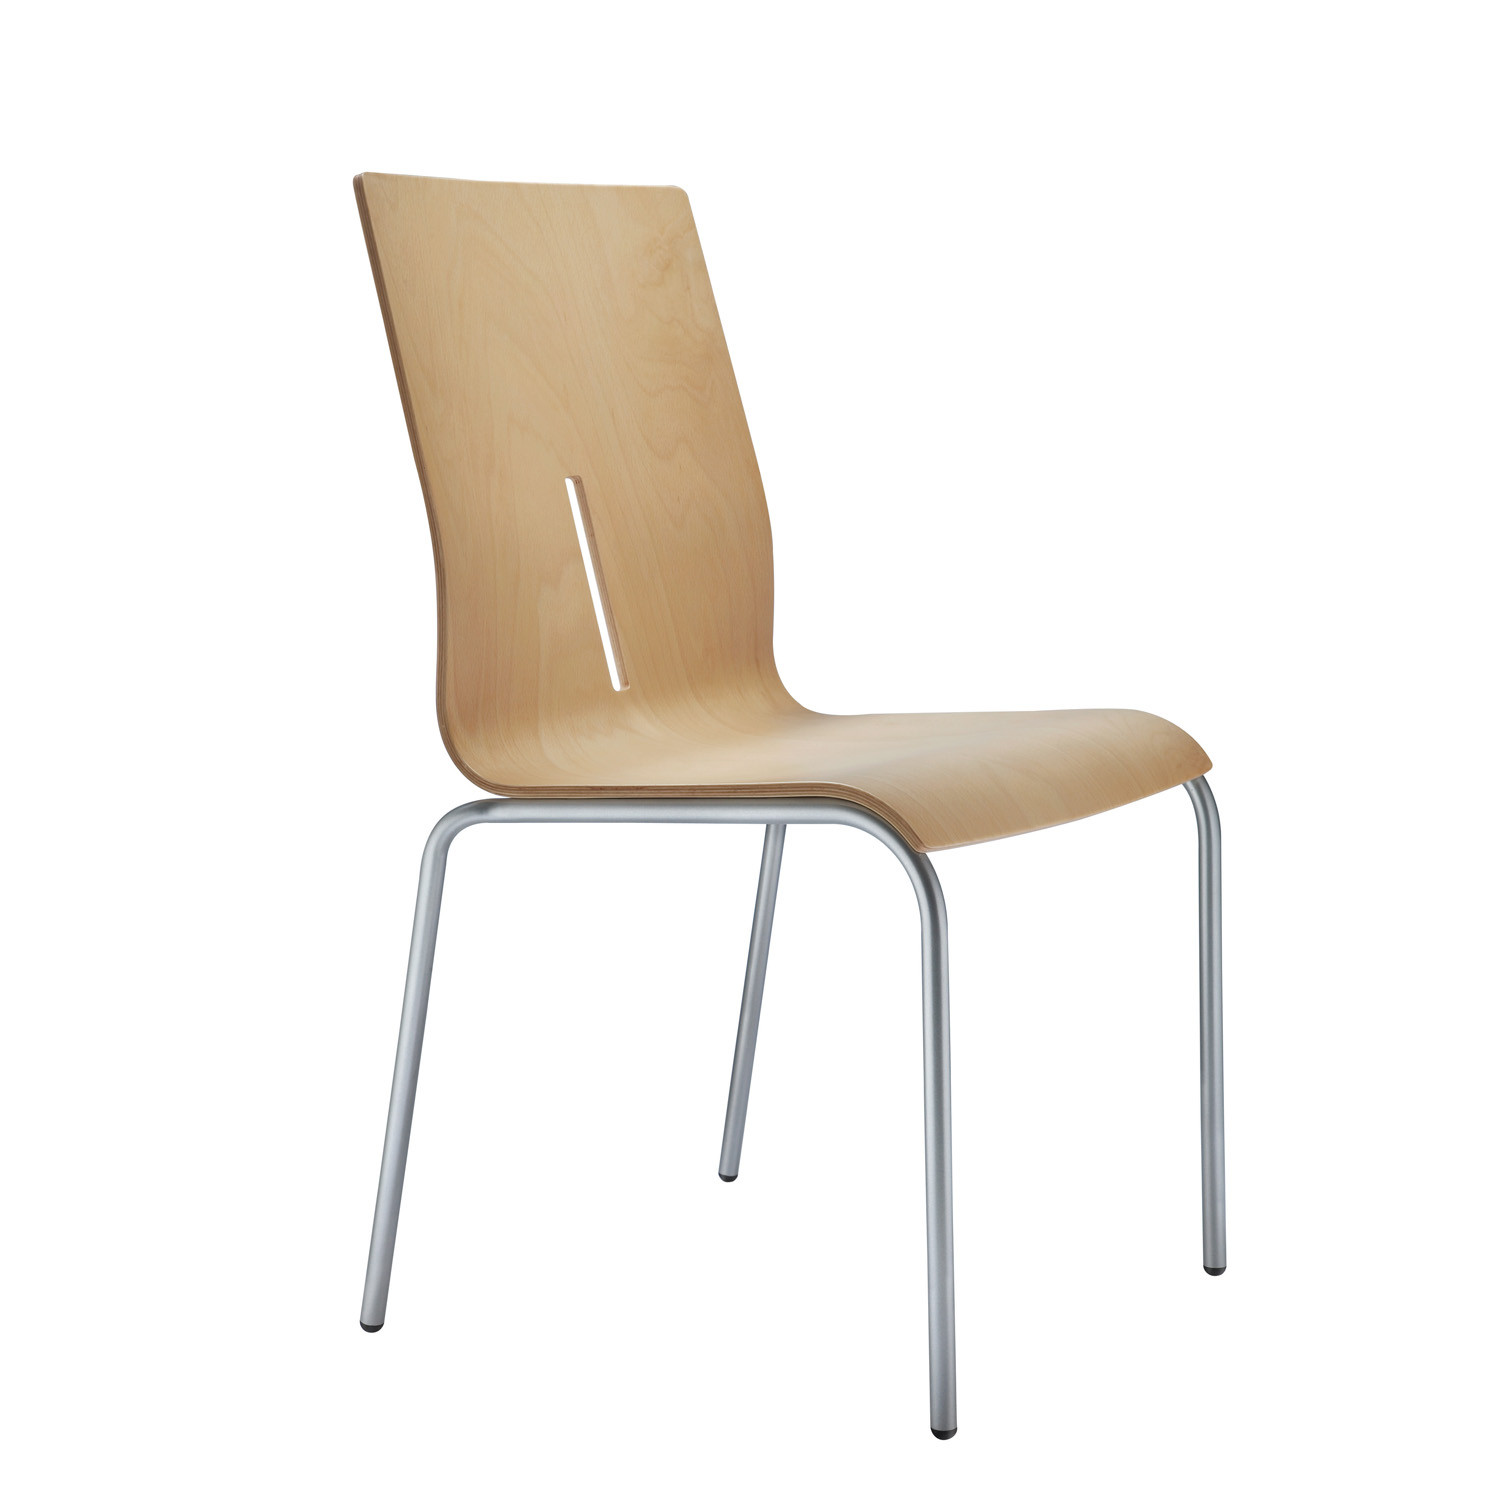 Mocha Dining Chair by Roger Webb Associates